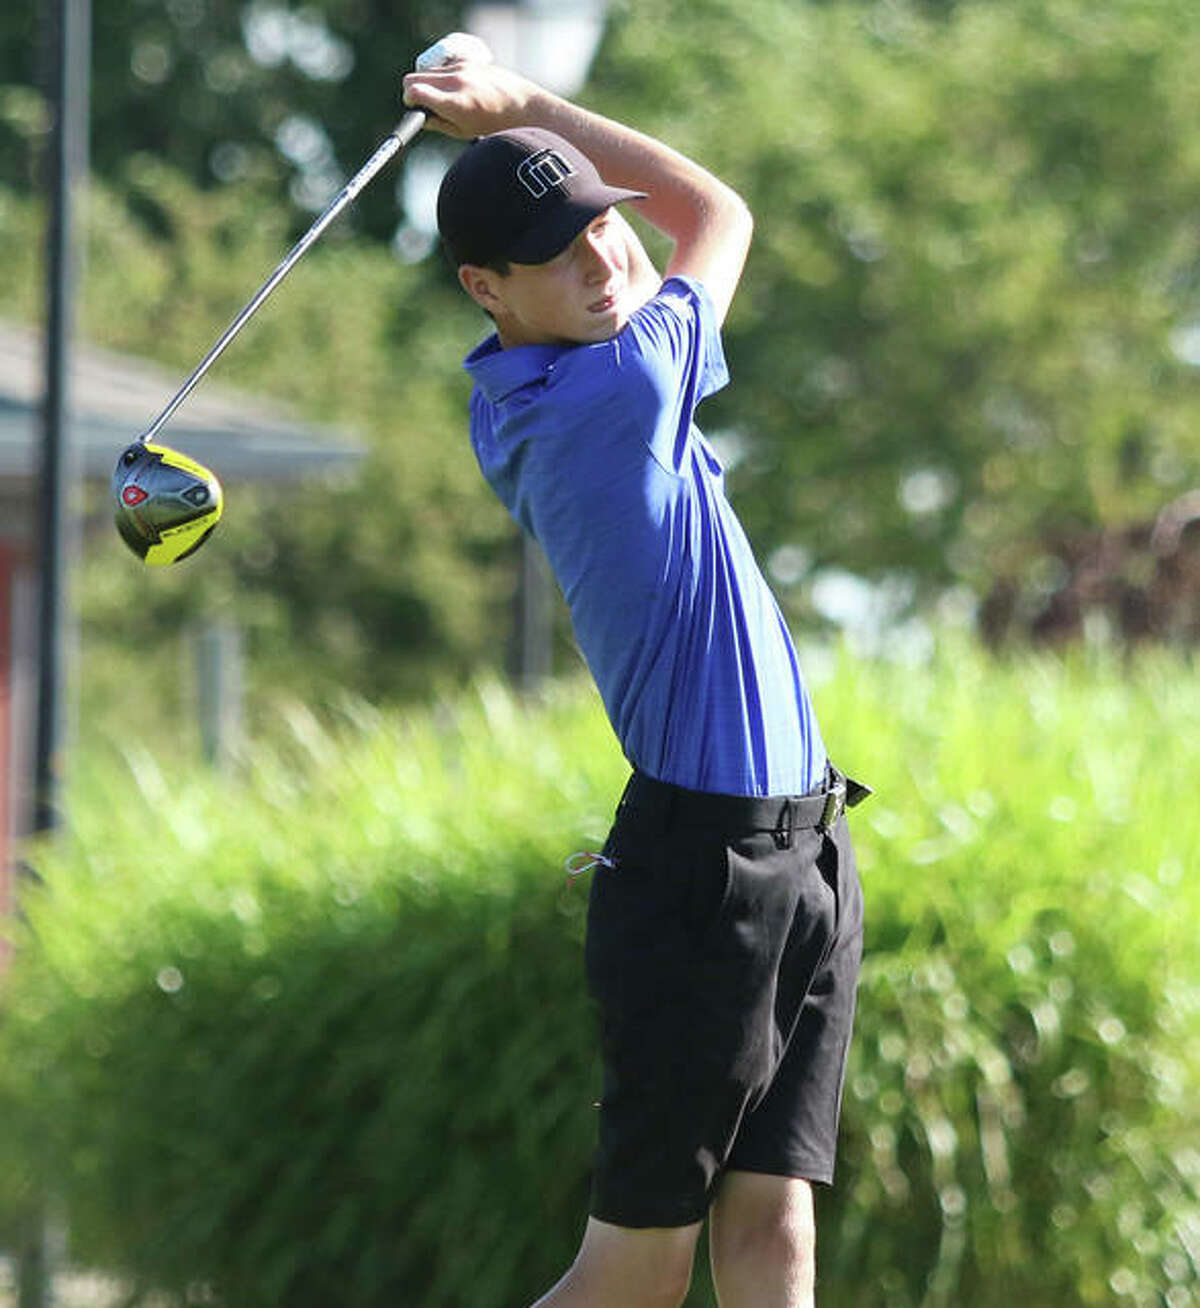 Marquette sophomore Aidan O'Keefe hits a drive from hole No. 1 on Monday at the Hickory Stick Invitational at Belk Park. O'Keefe shot 77 to place fifth in the tourney.